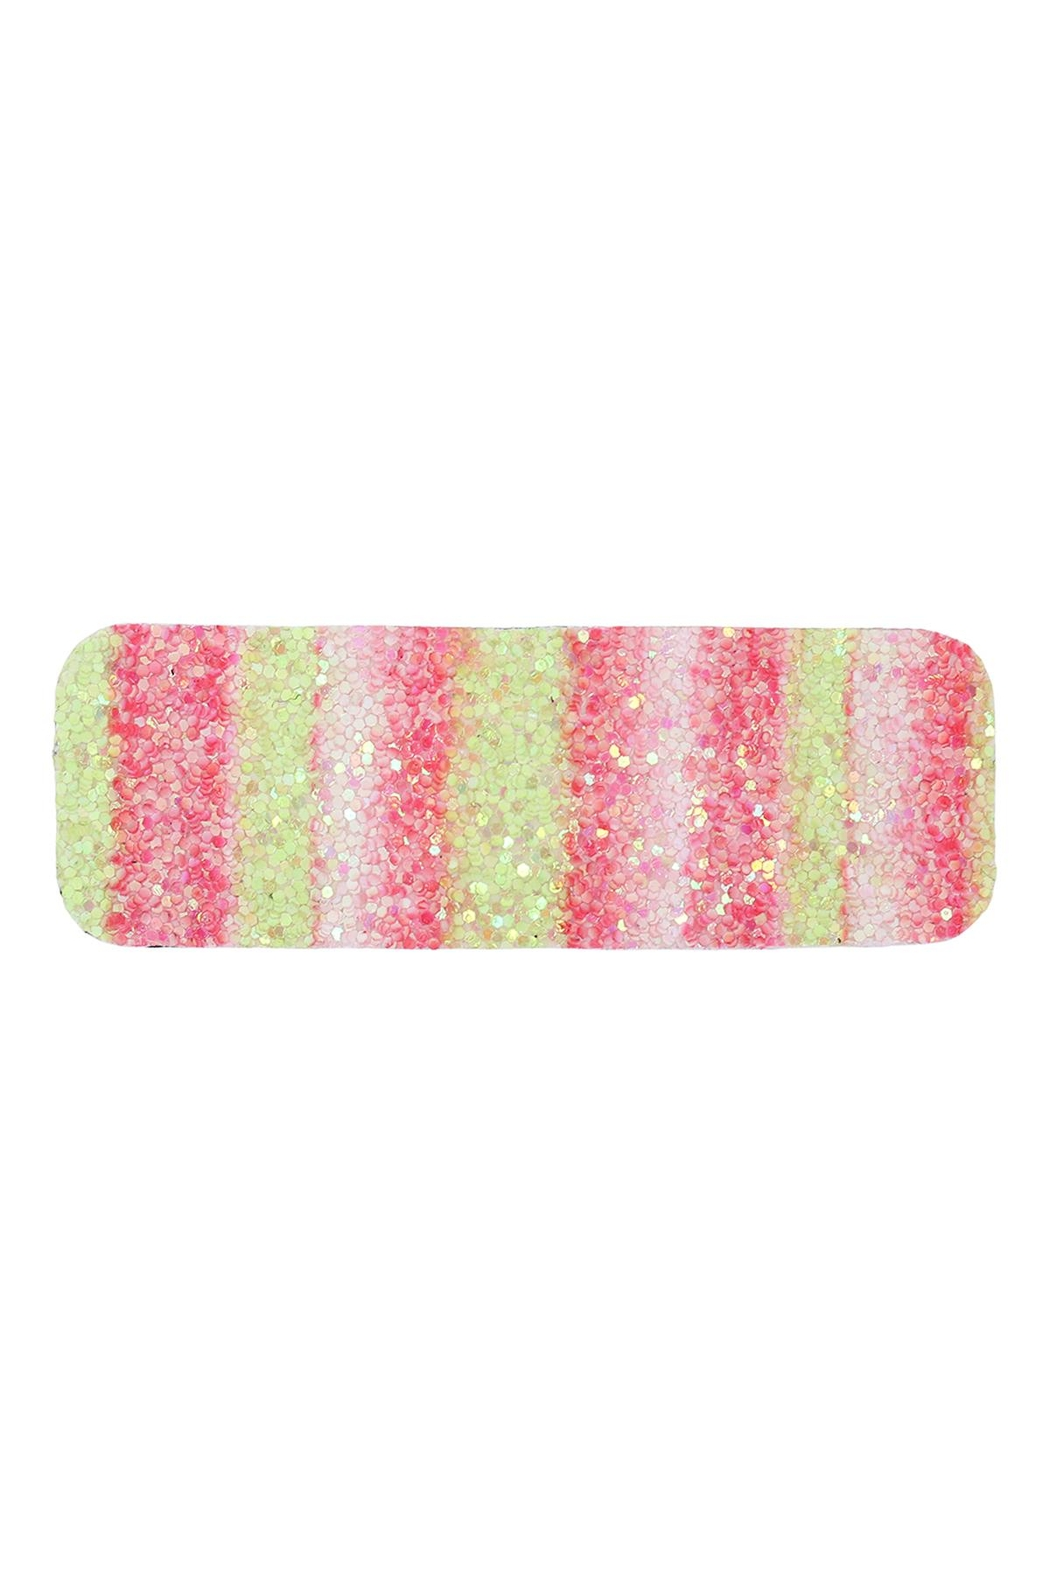 Riah Fashion Multicolor Sequined Rectangle Hair Clip Set - Front Full Image